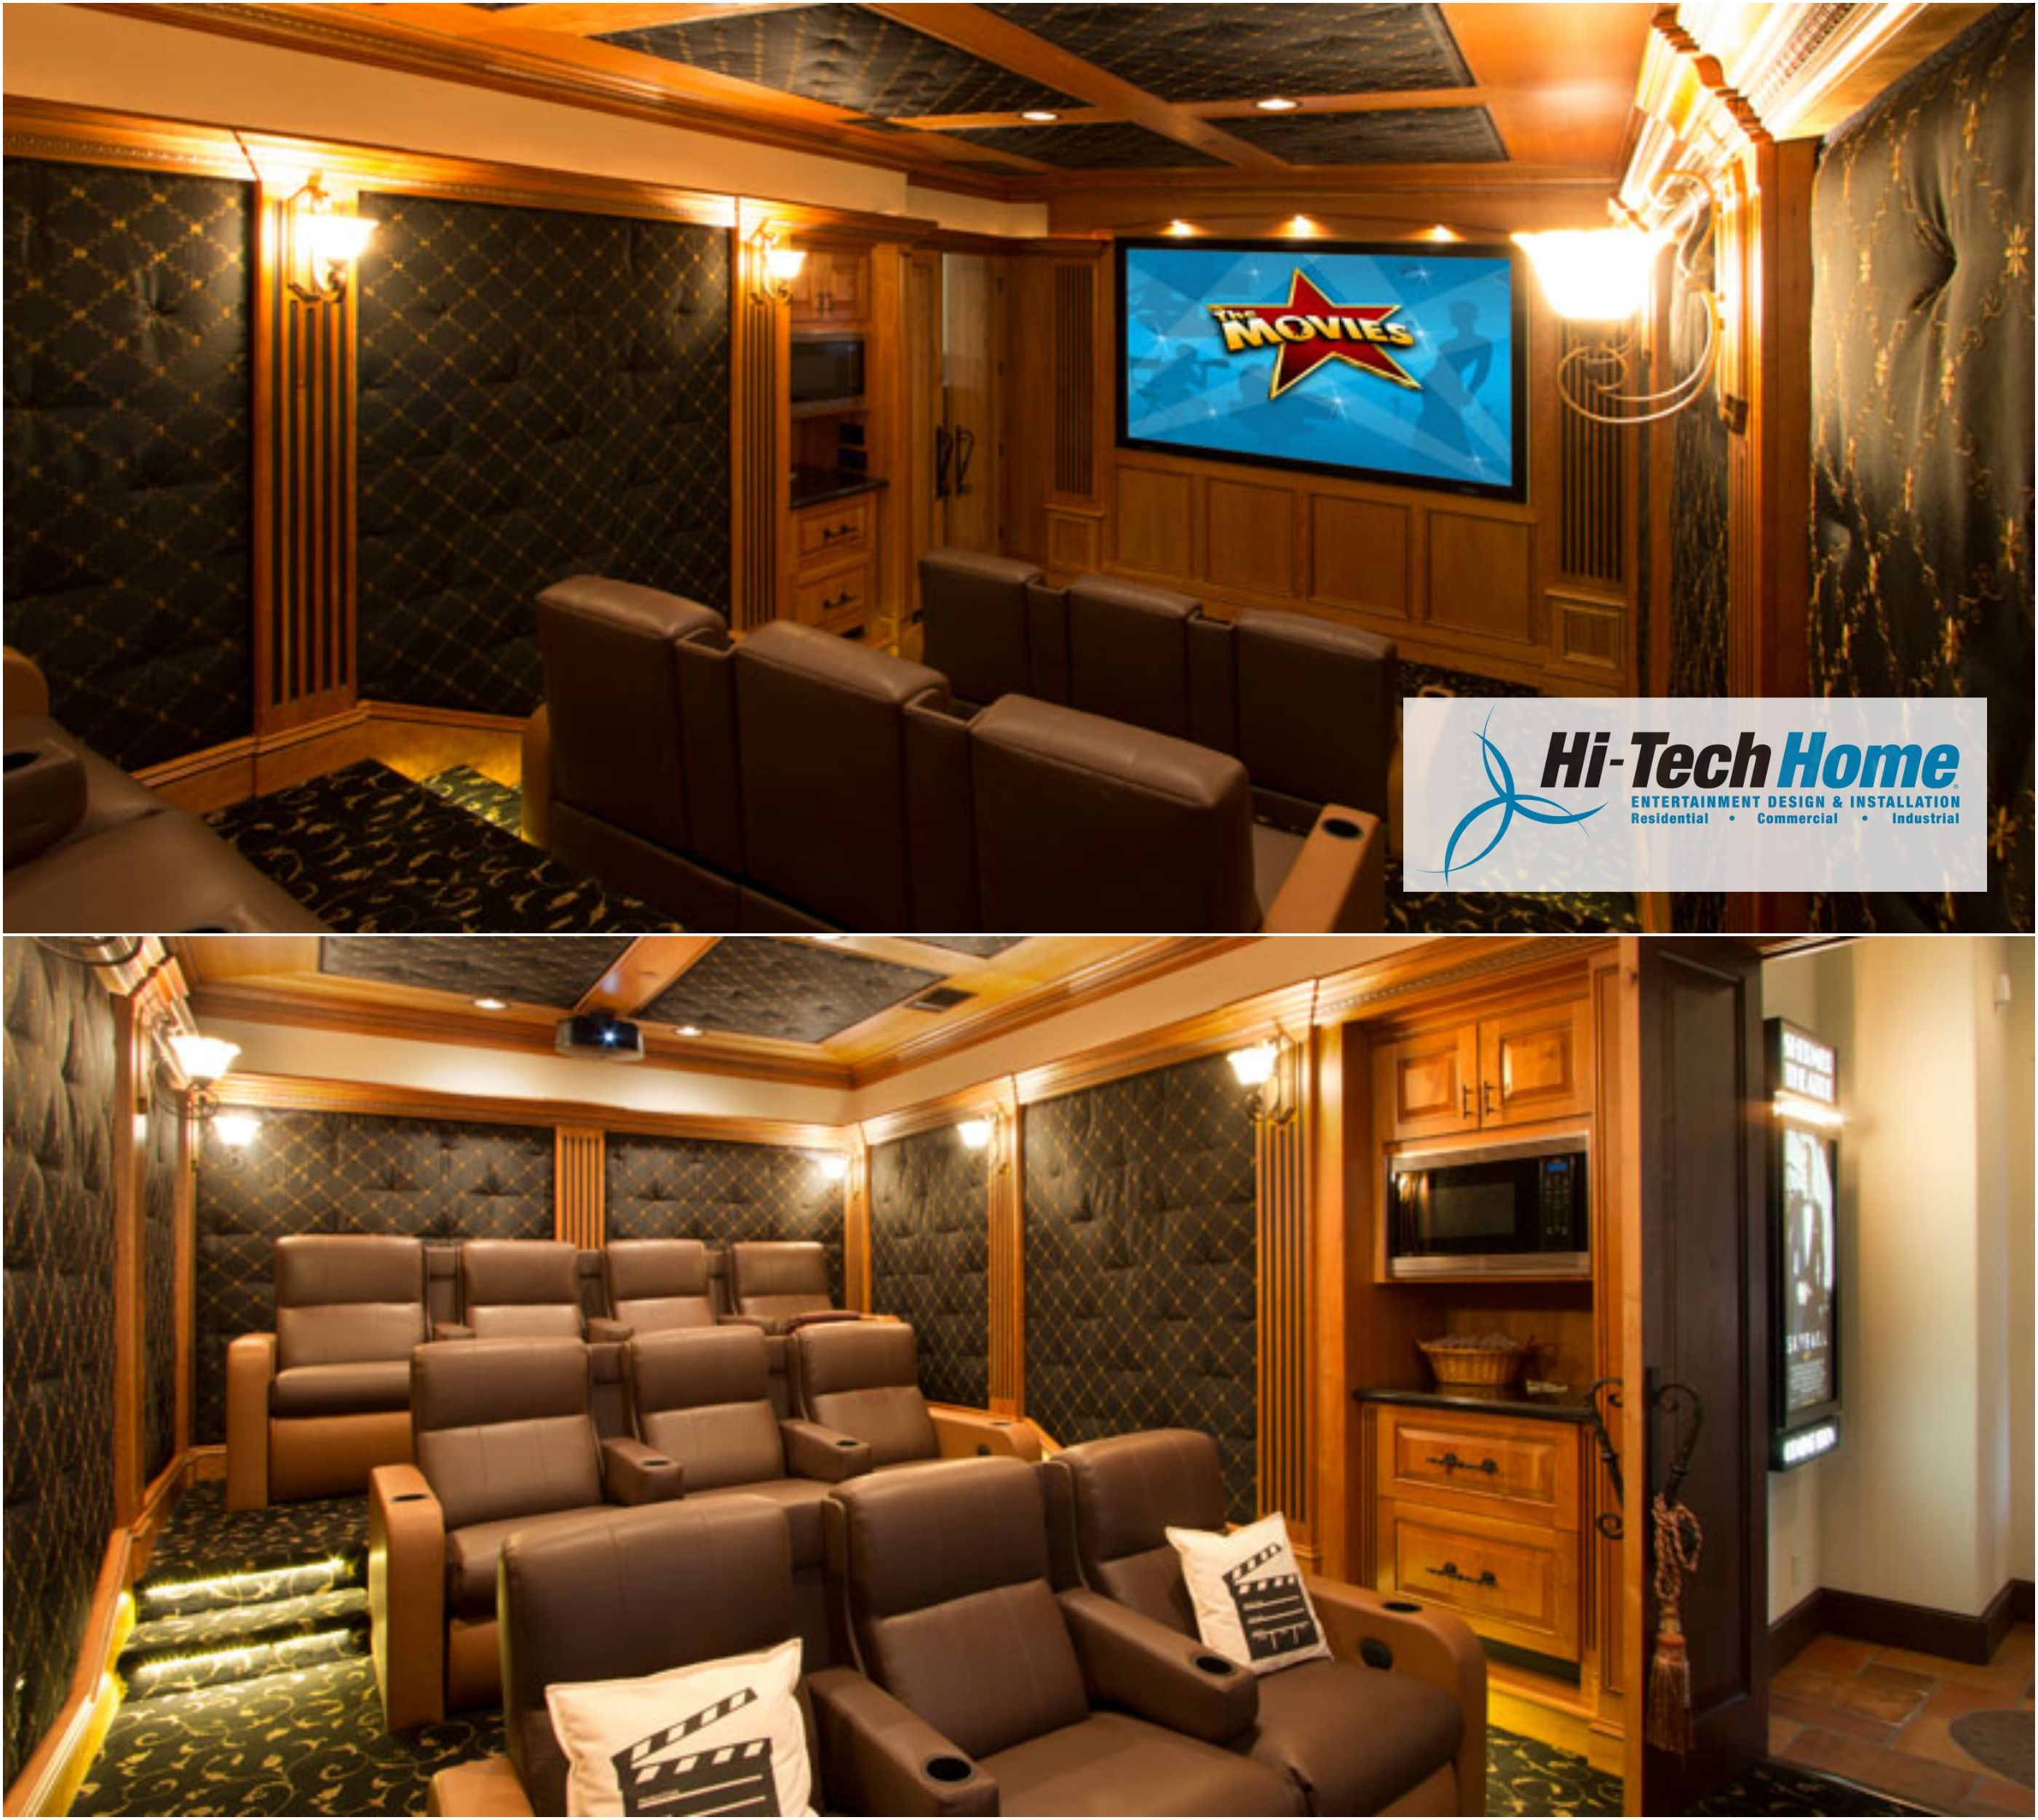 21 Incredible Home Theater Design Ideas Decor Pictures: Beat The Heat And Avoid The Crowds This Summer With Your